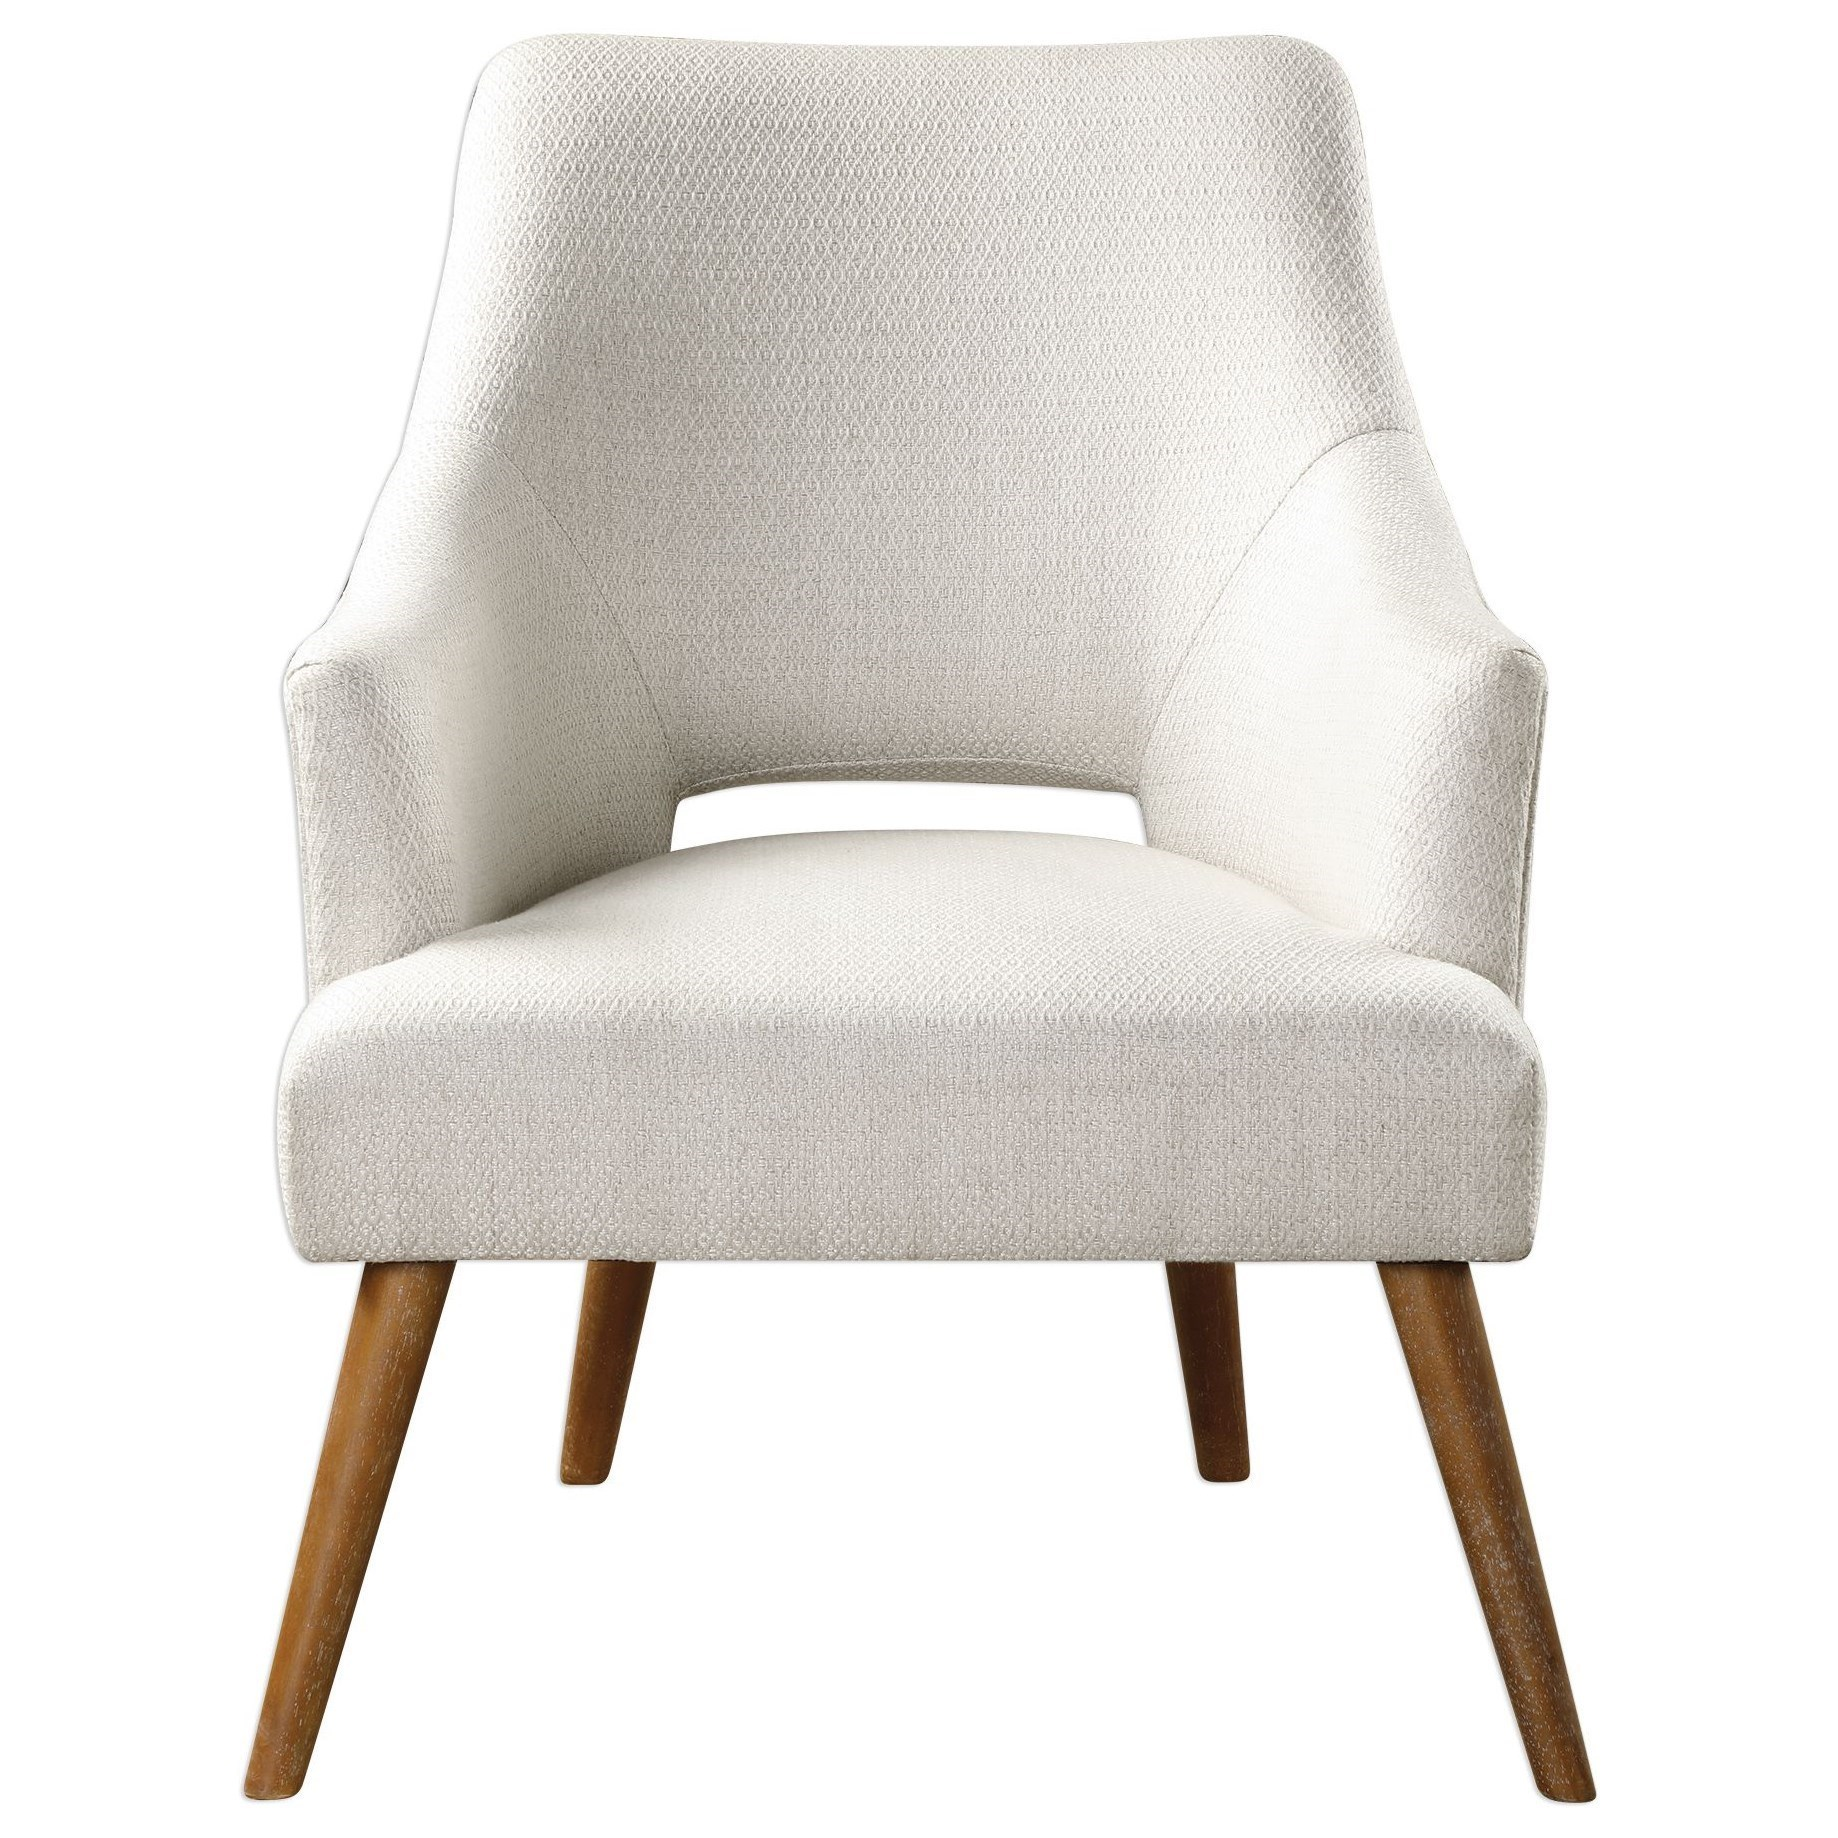 Accent Furniture - Accent Chairs Dree Retro Accent Chair by Uttermost at Furniture Superstore - Rochester, MN